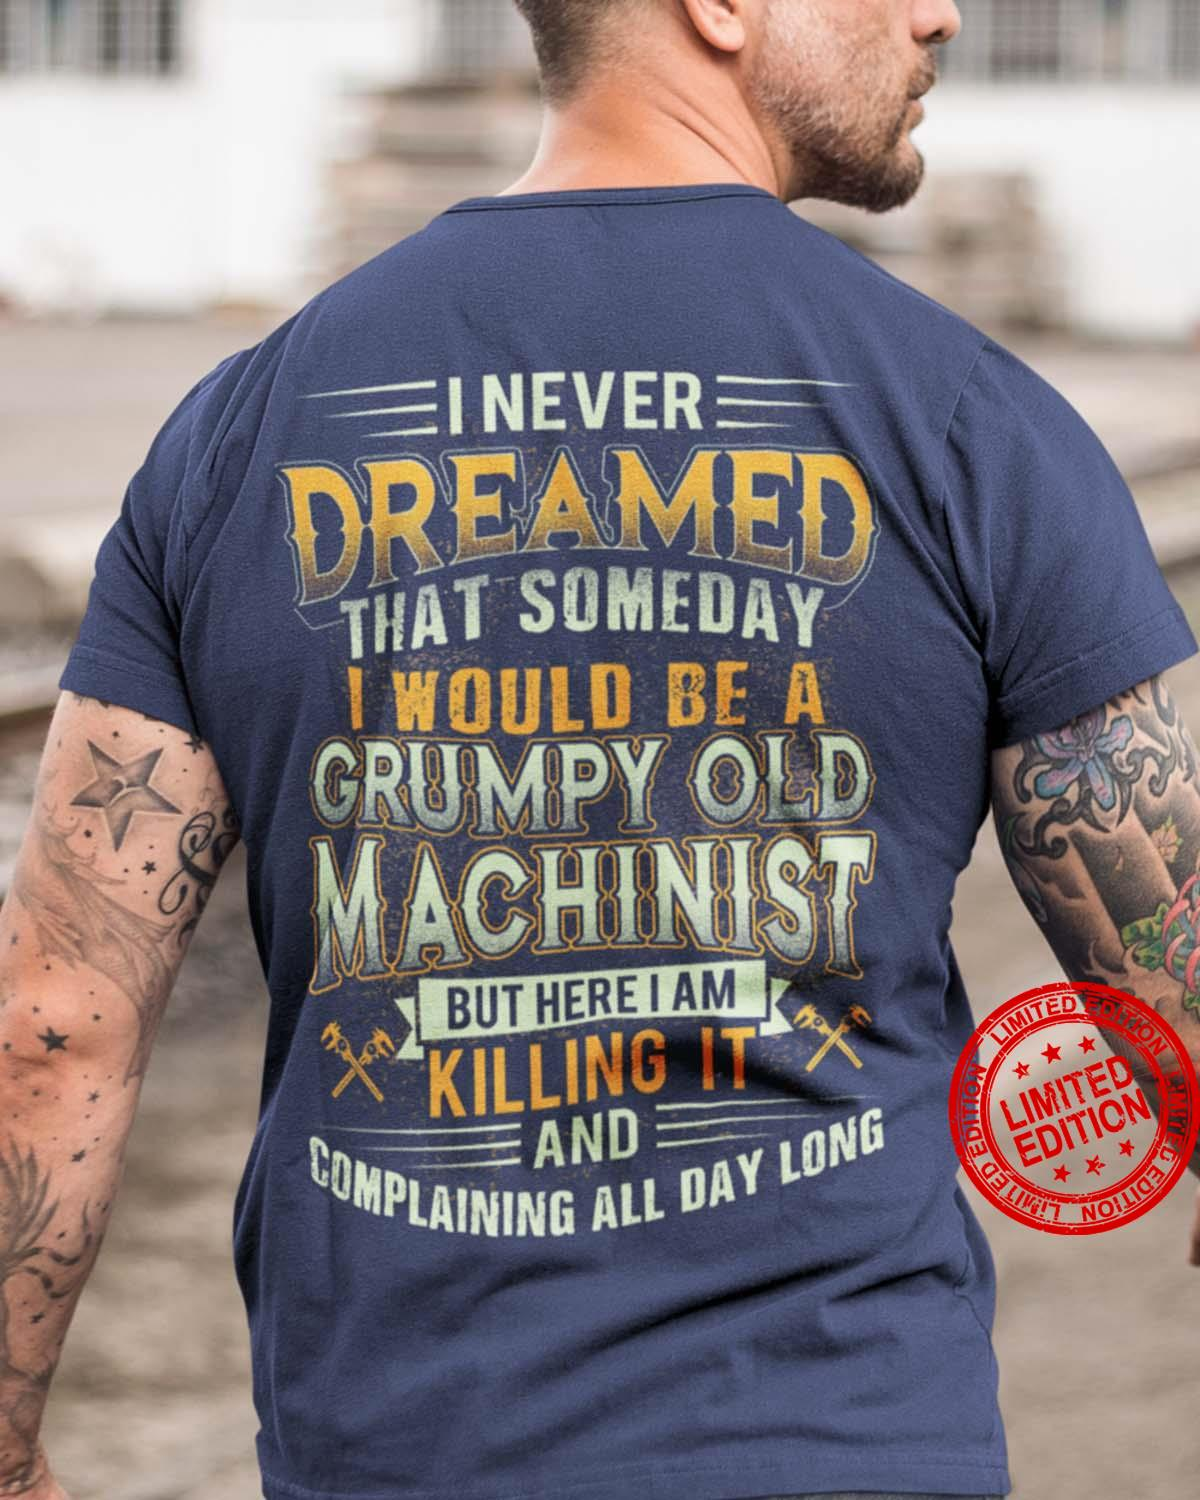 I Never Dreamed That Someday I Would Be A Grumpy Old Machinist But Here I Am Killing It And Complaining All Day Long Shirt